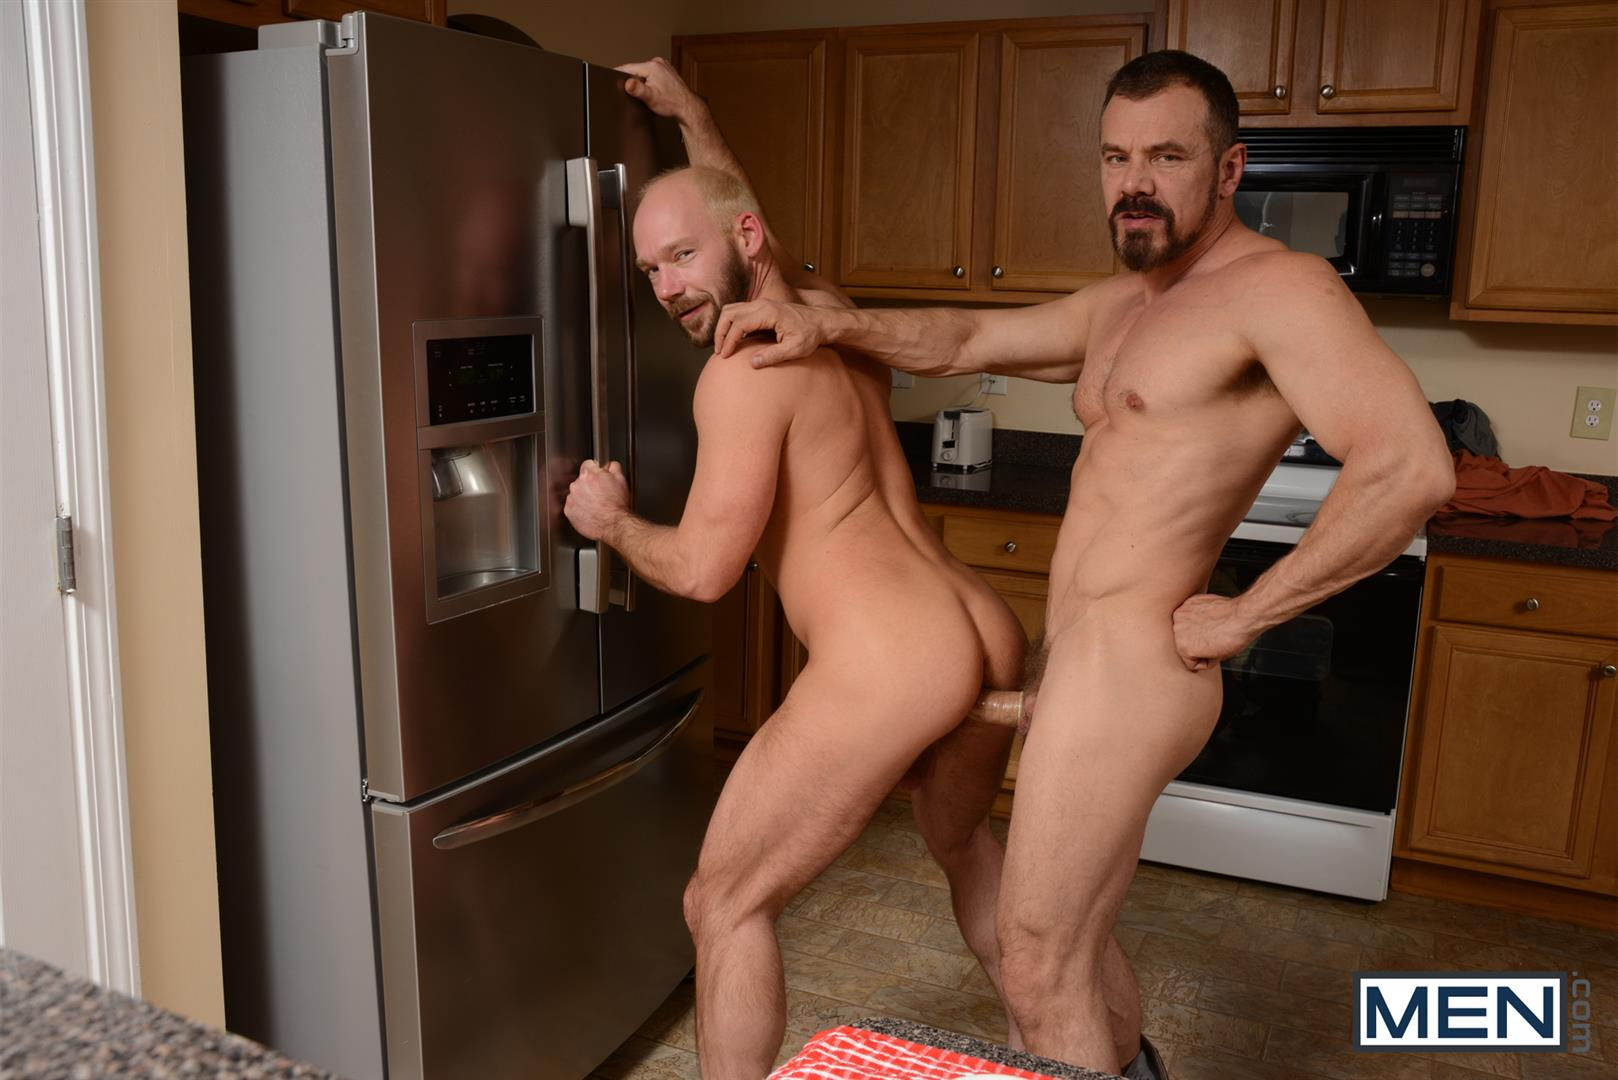 Men-Drill-My-Hole-Max-Sargent-and-Mike-Tanner-Thick-Cock-Daddys-Fucking-Amateur-Gay-Porn-06 Hairy Muscle Daddy's Fucking In The Kitchen And Eating Cum